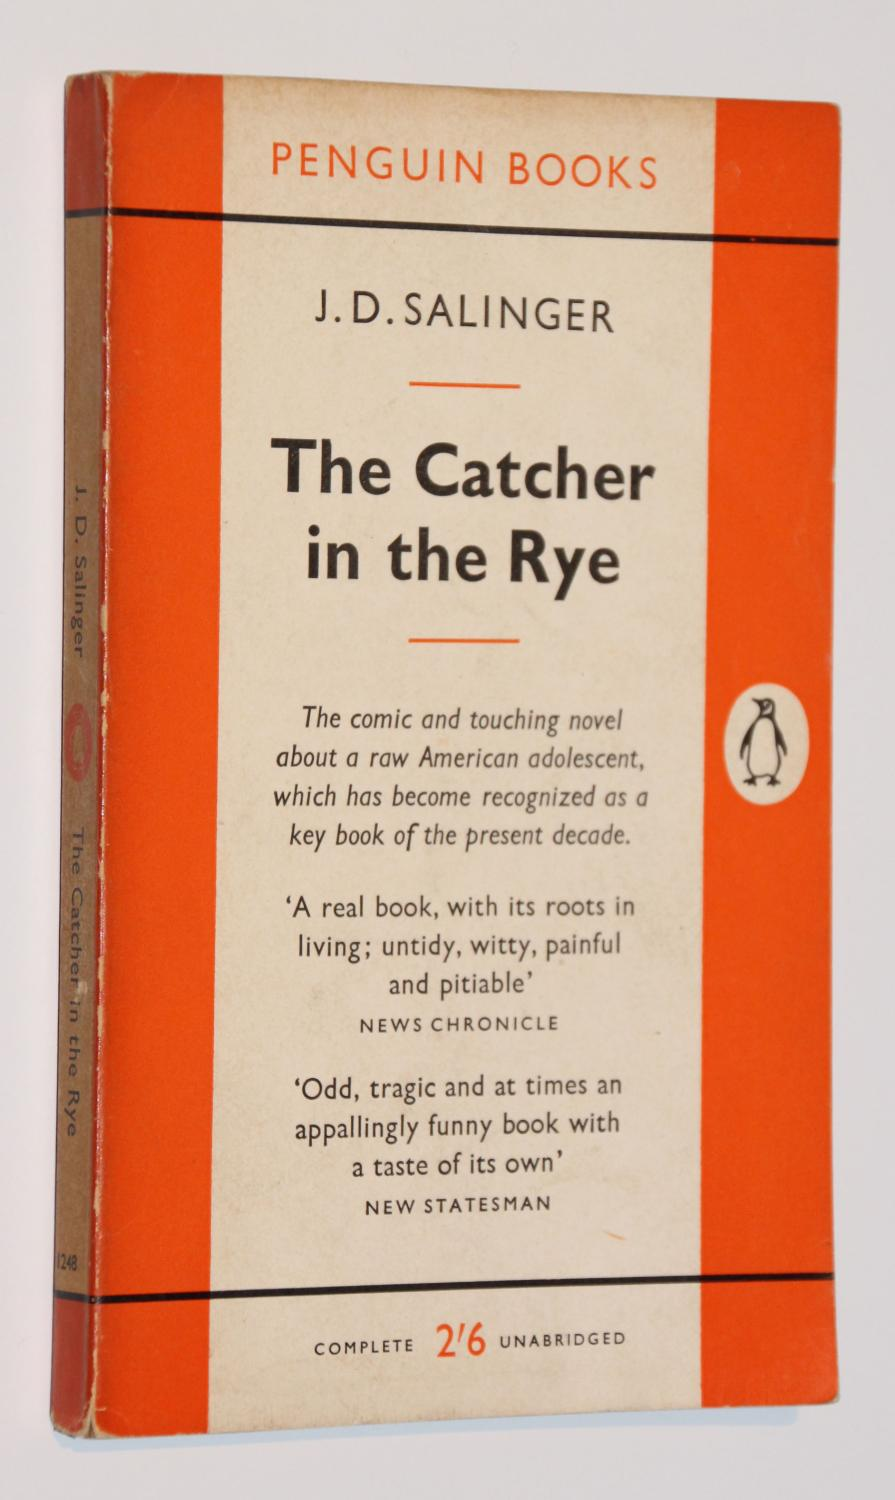 j d salinger and catcher Today marks six years since celebrated writer j d salinger died at his home in cornish, new hampshire, at the age of 91 but his influence remains well and truly alive.